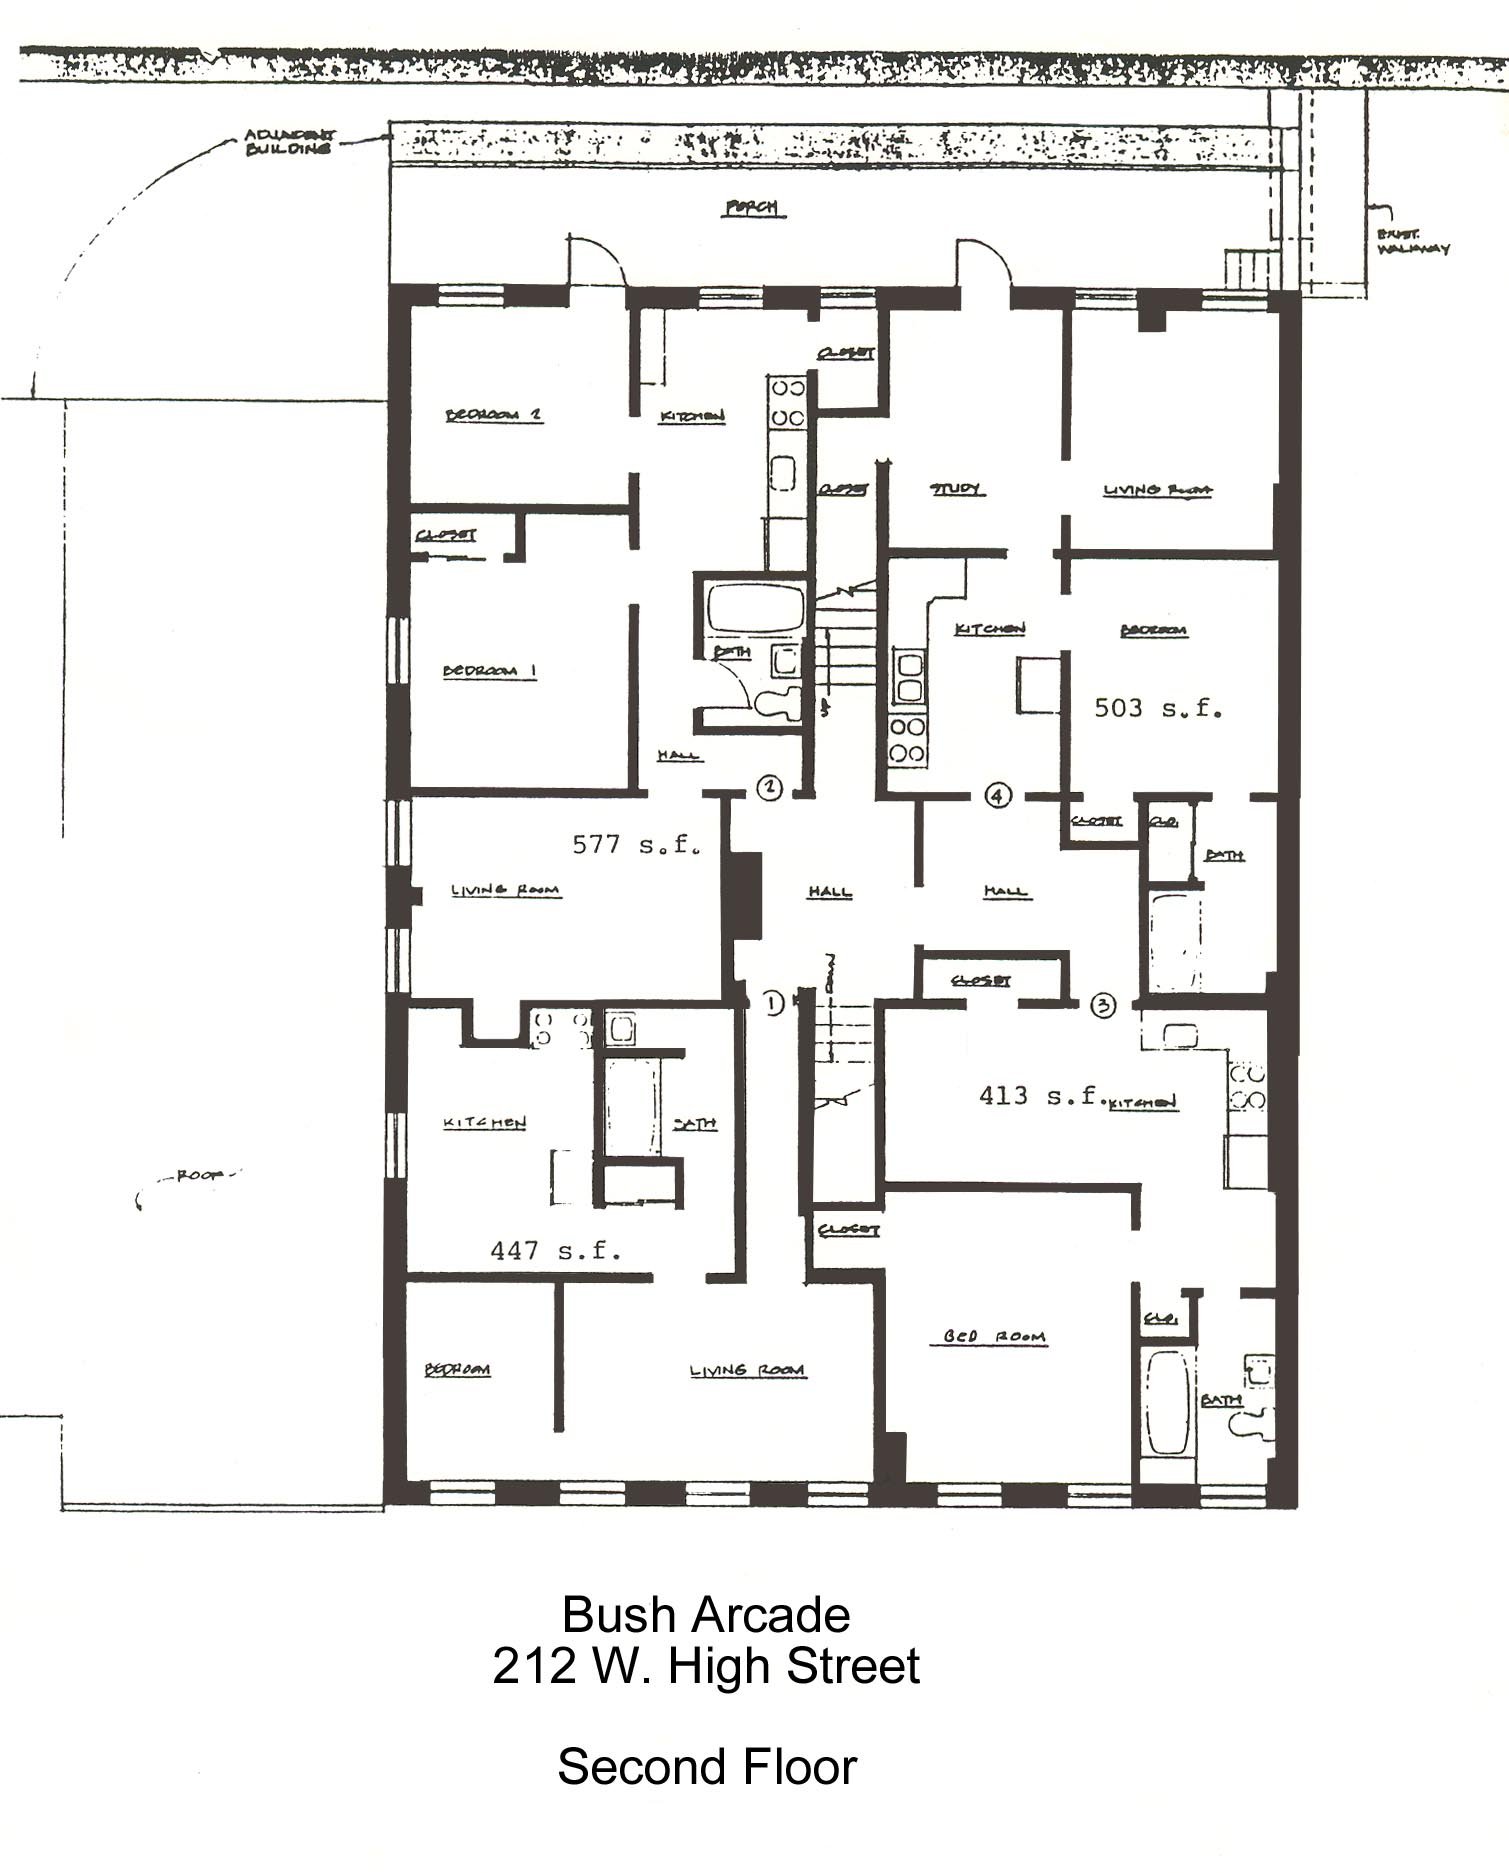 Floor Plans for apartment #104 at the Bush Arcade Building in Bellefonte PA